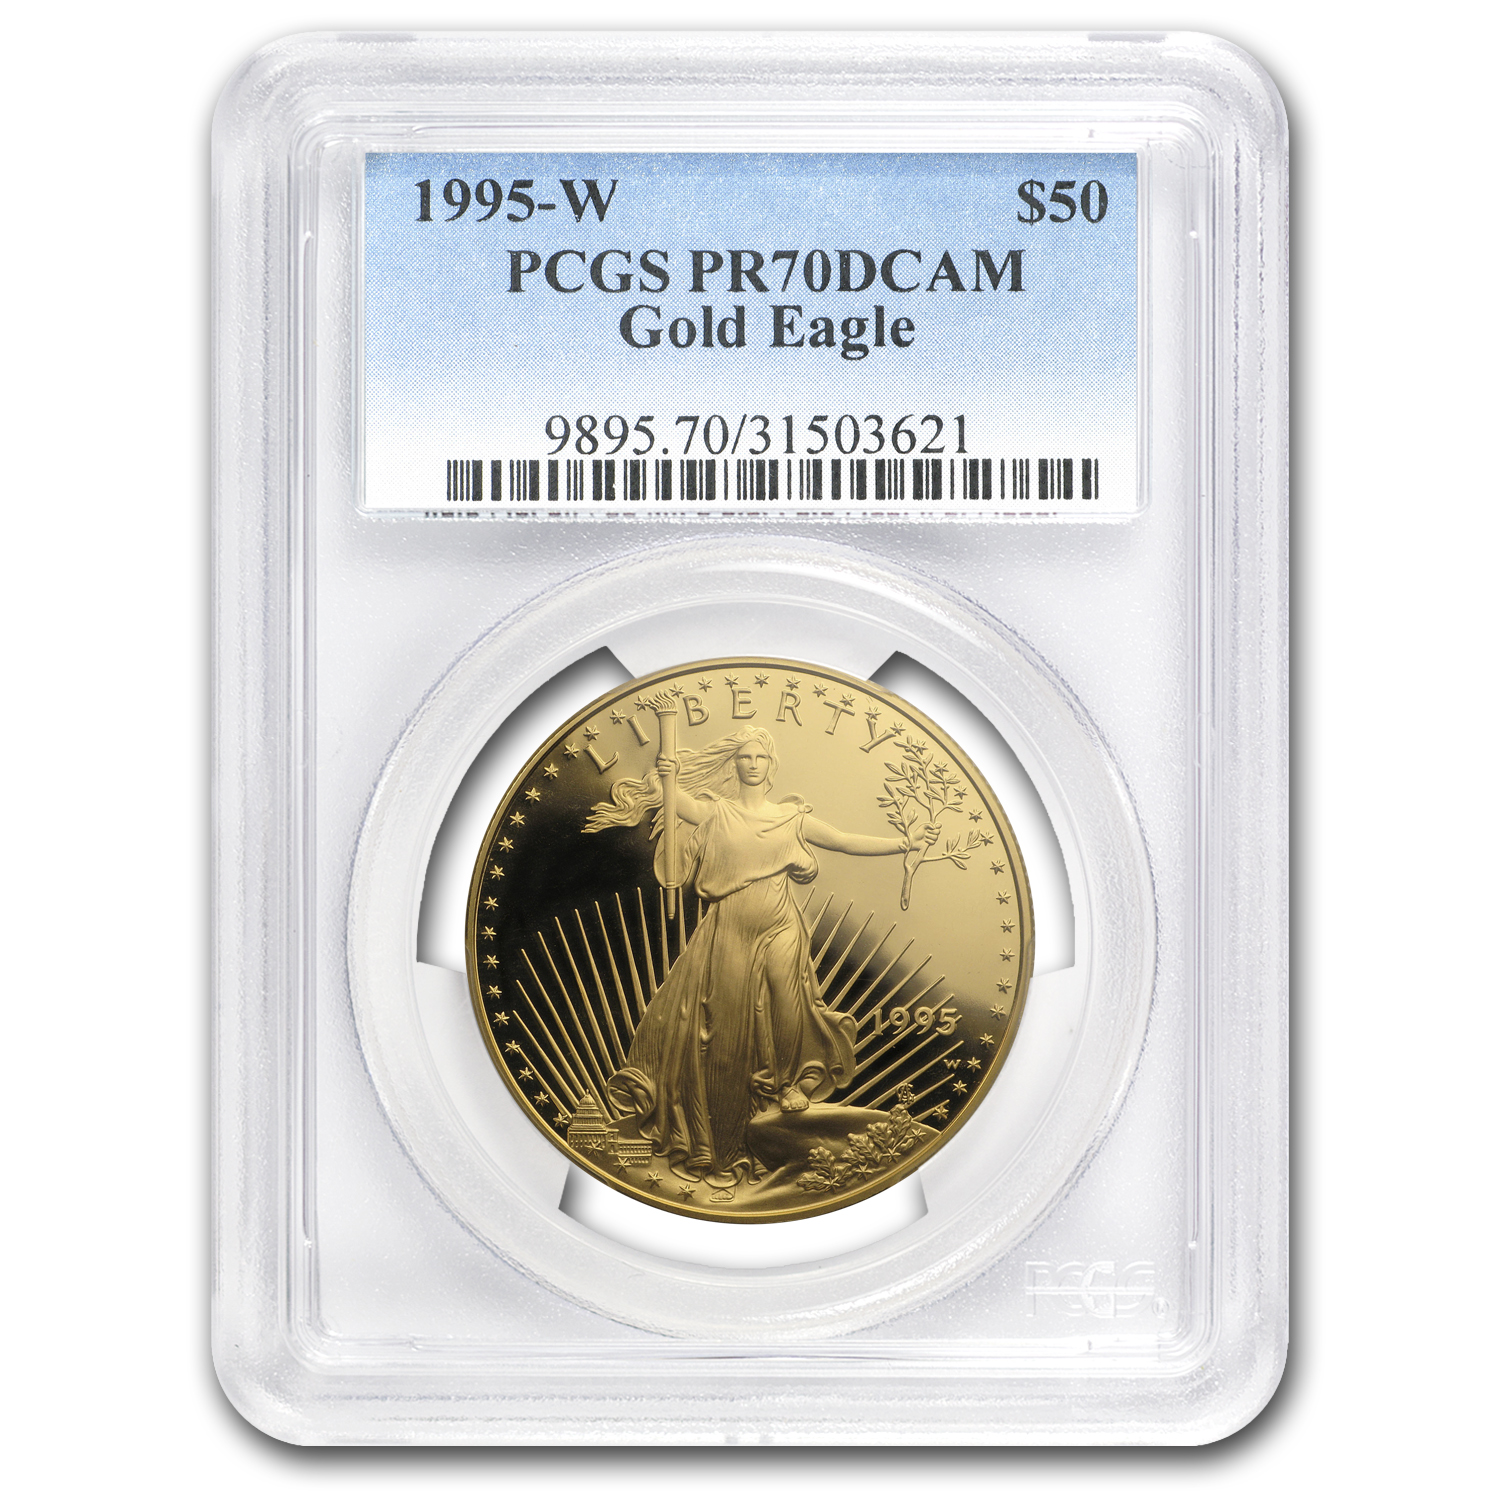 1995-W 1 oz Proof Gold American Eagle PR-70 PCGS